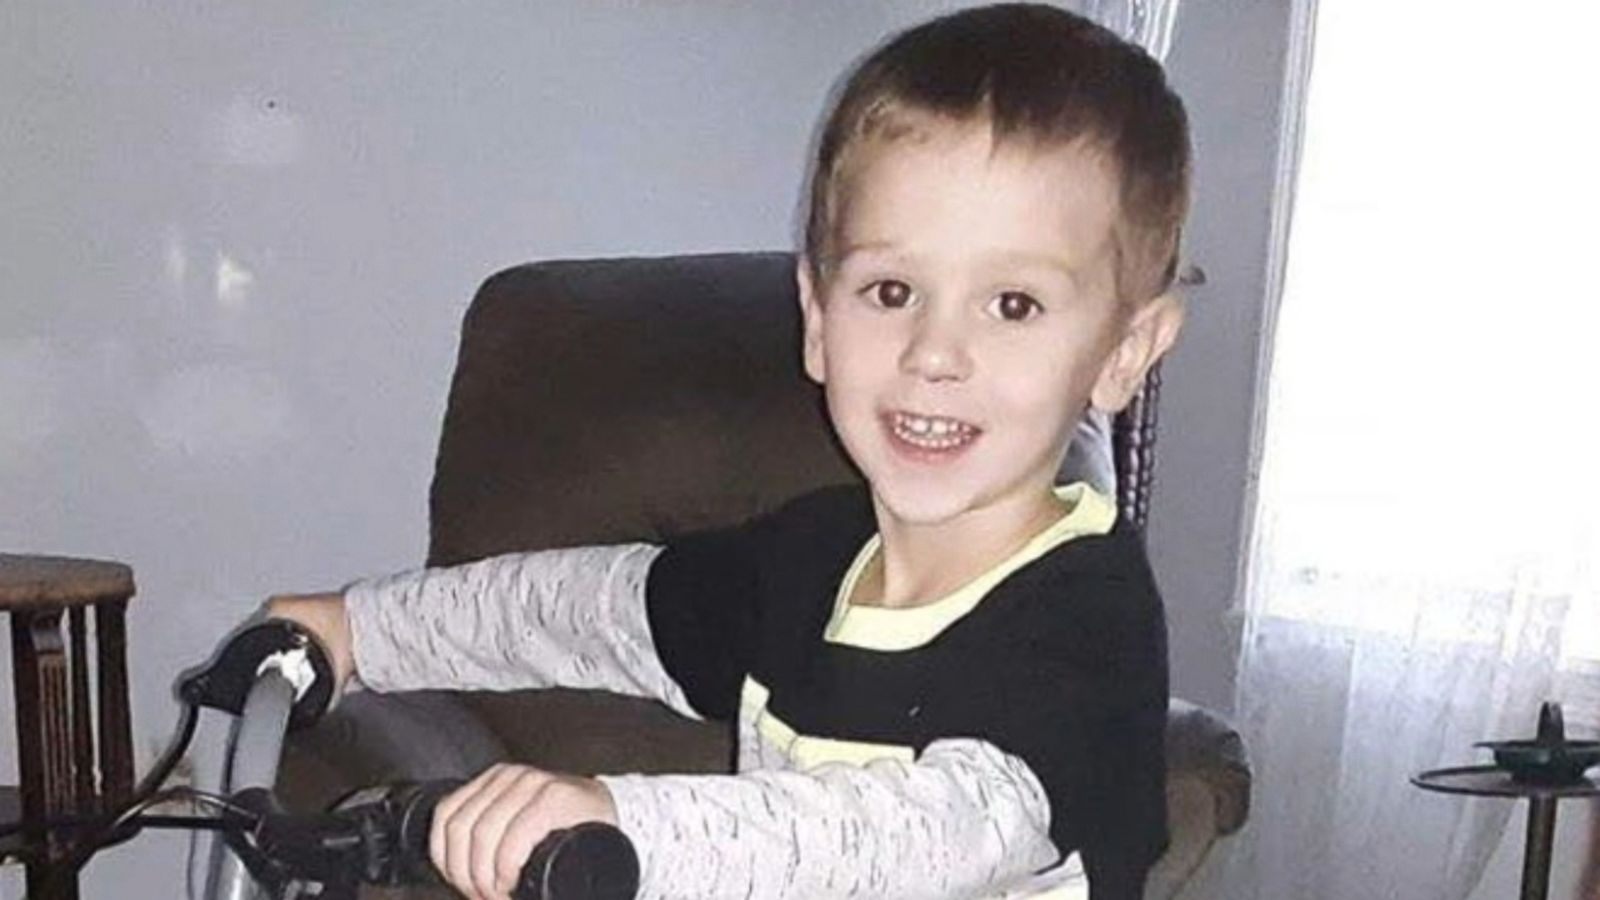 missing 3 year old